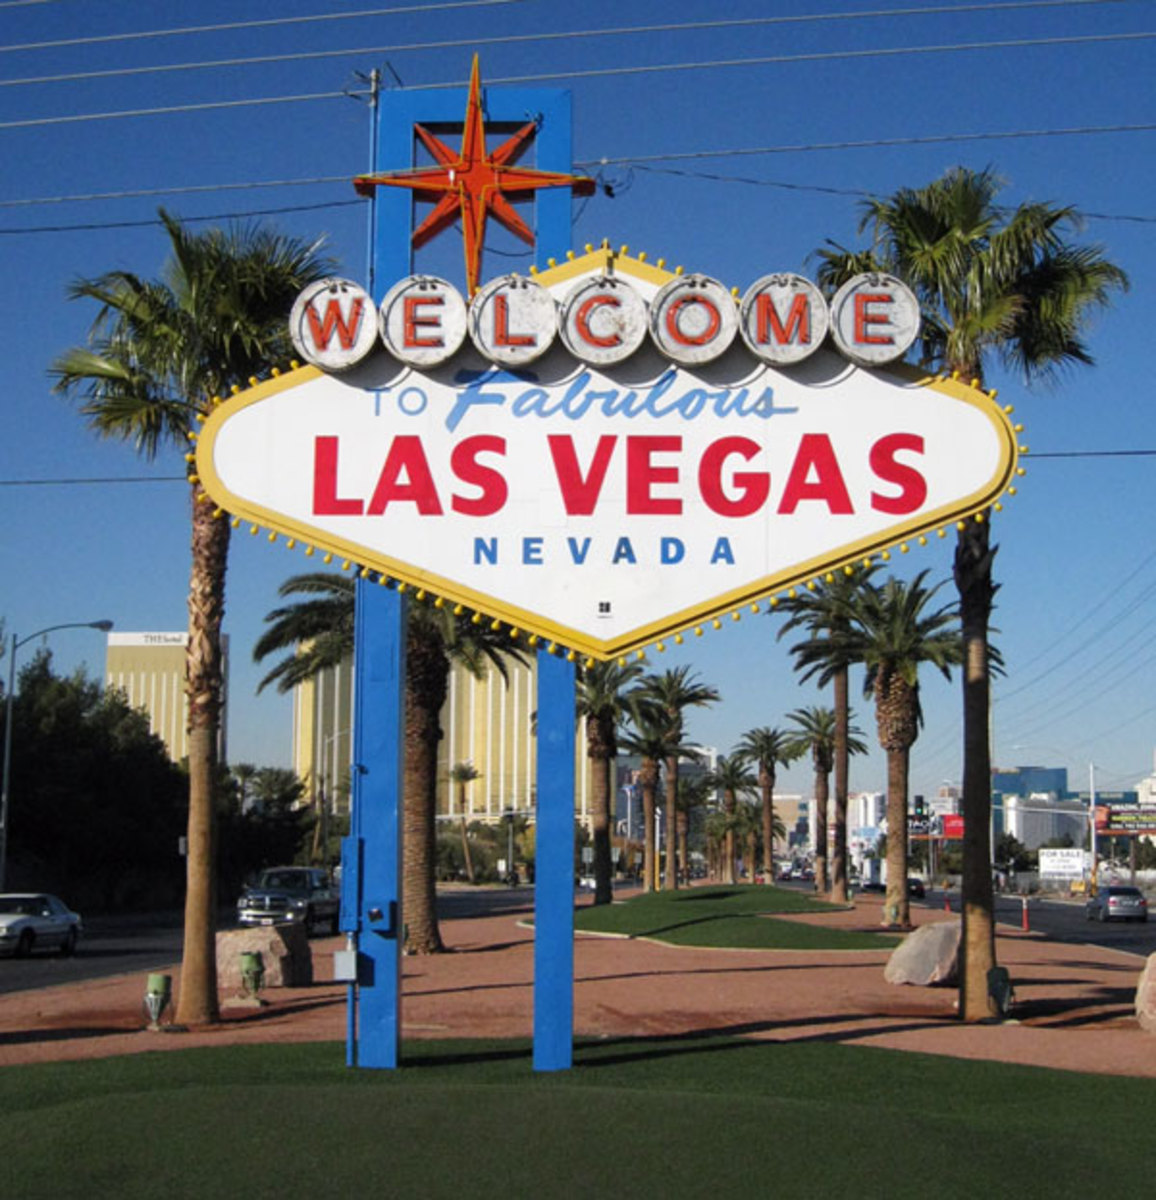 Welcome to Las Vegas city sign.